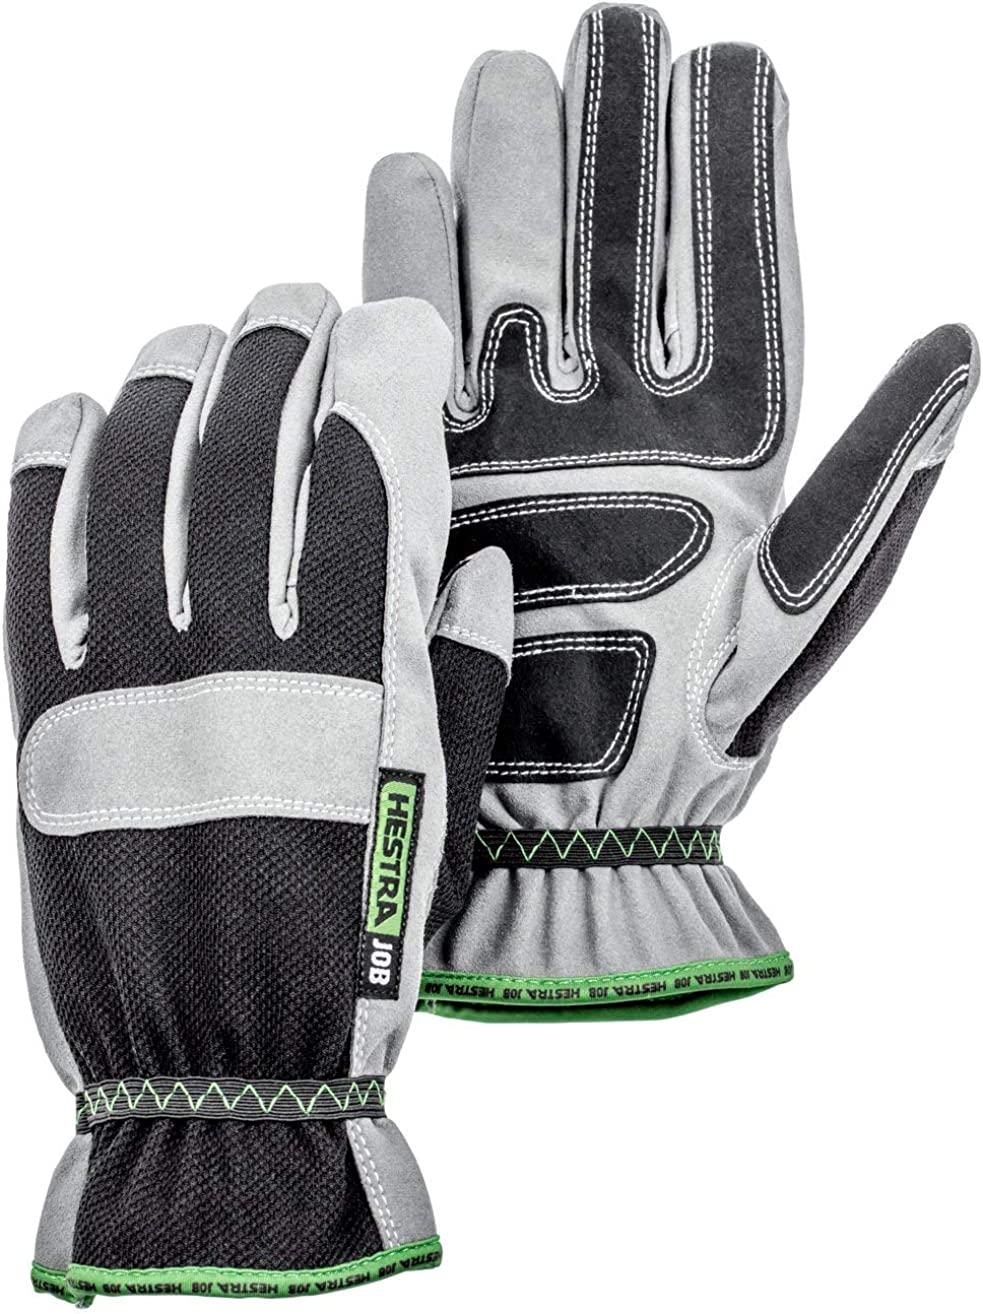 Hestra Anton Glove - 5-Finger Glove for Lawn, Garden and General Jobs in Warm Weather Conditions